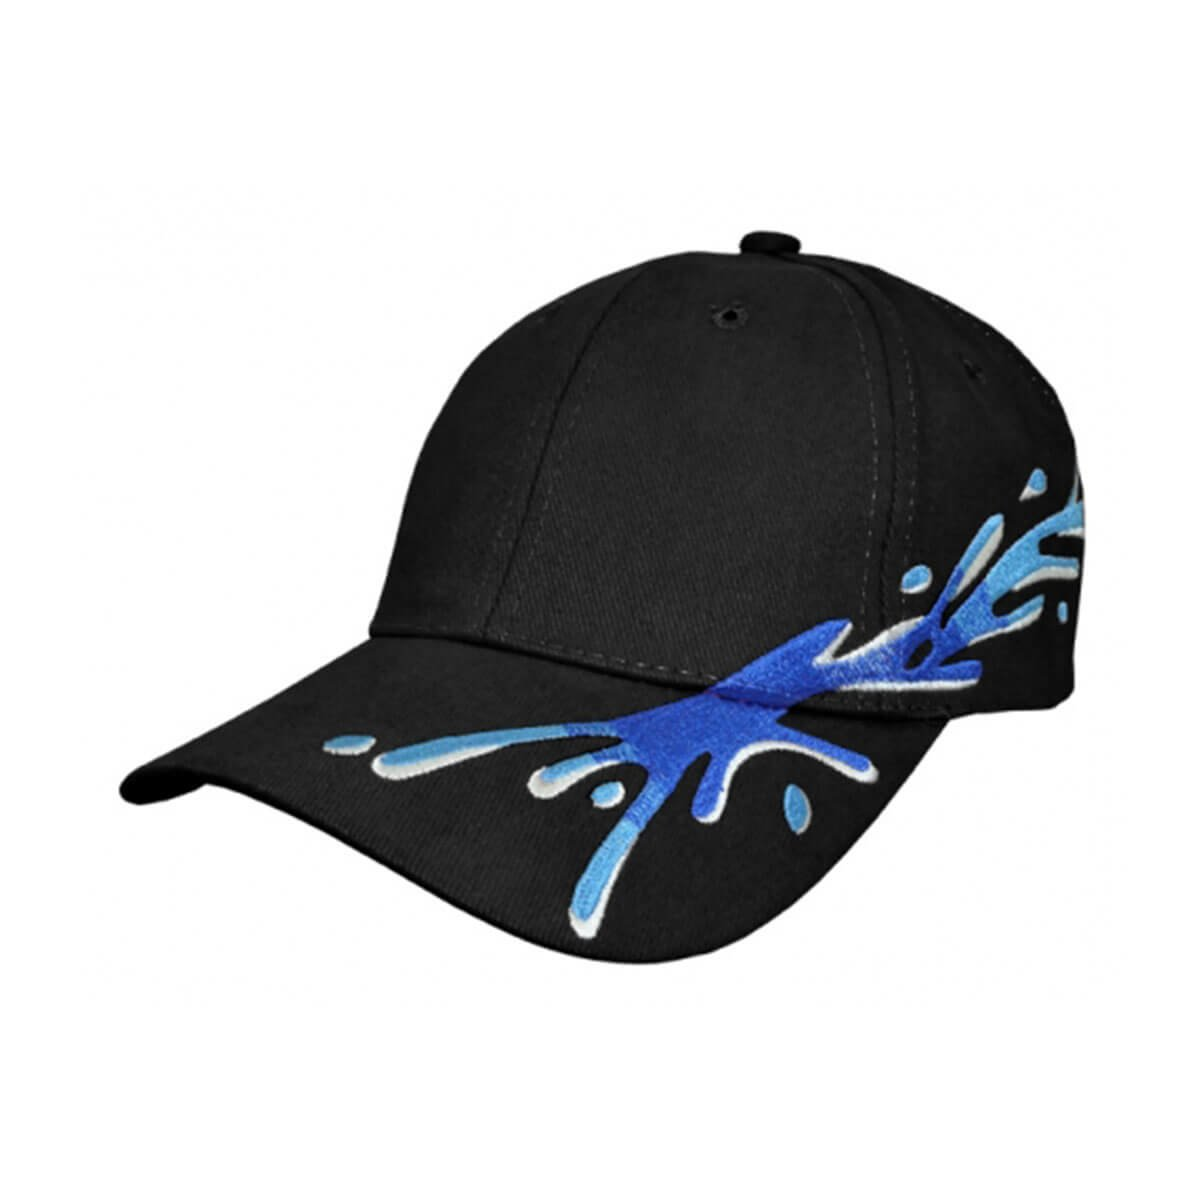 Splash Cap-Black / Royal / Sky / White